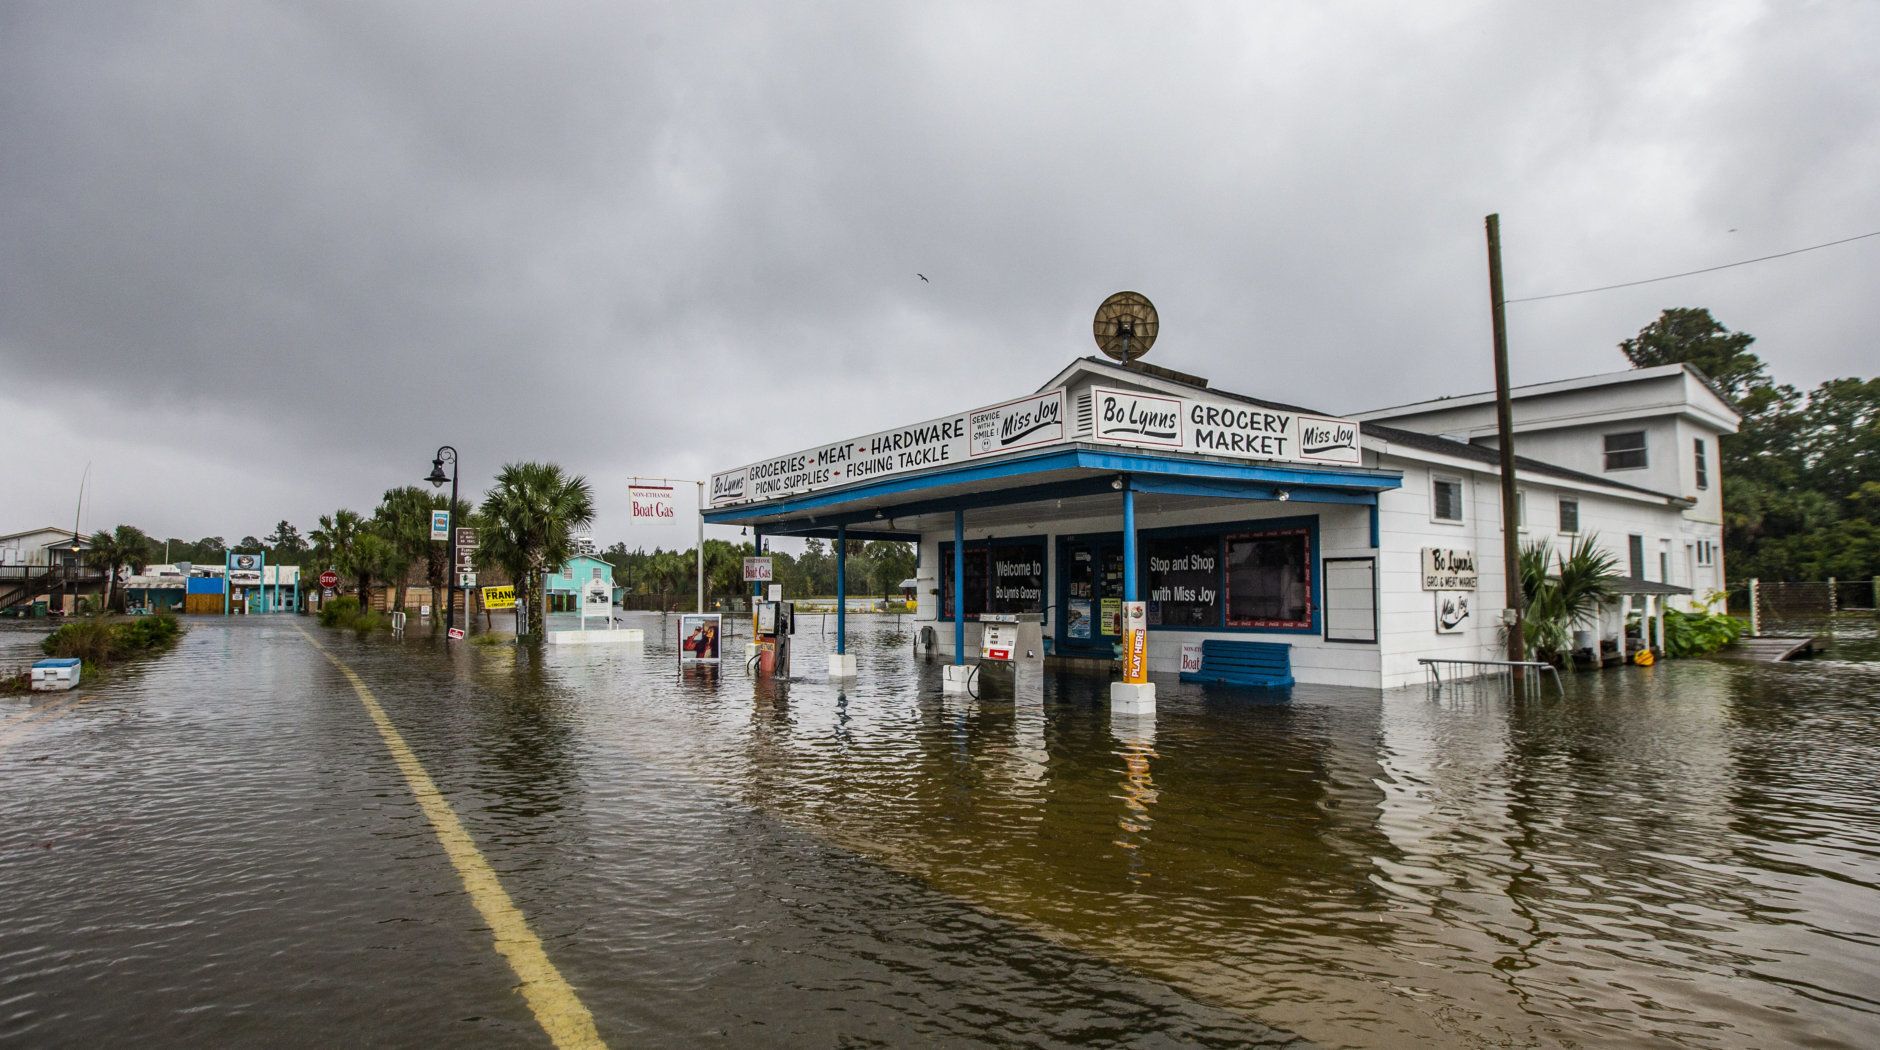 SAINT MARKS, FL - OCTOBER 10: Bo Lynn's Market starts taking water in the town of Saint Marks as Hurricane Michael pushes the storm surge up the Wakulla and Saint Marks Rivers which come together here on October 10, 2018 in Saint Marks, Florida.  The hurricane is forecast to hit the Florida Panhandle at a possible category 4 storm.  (Photo by Mark Wallheiser/Getty Images)